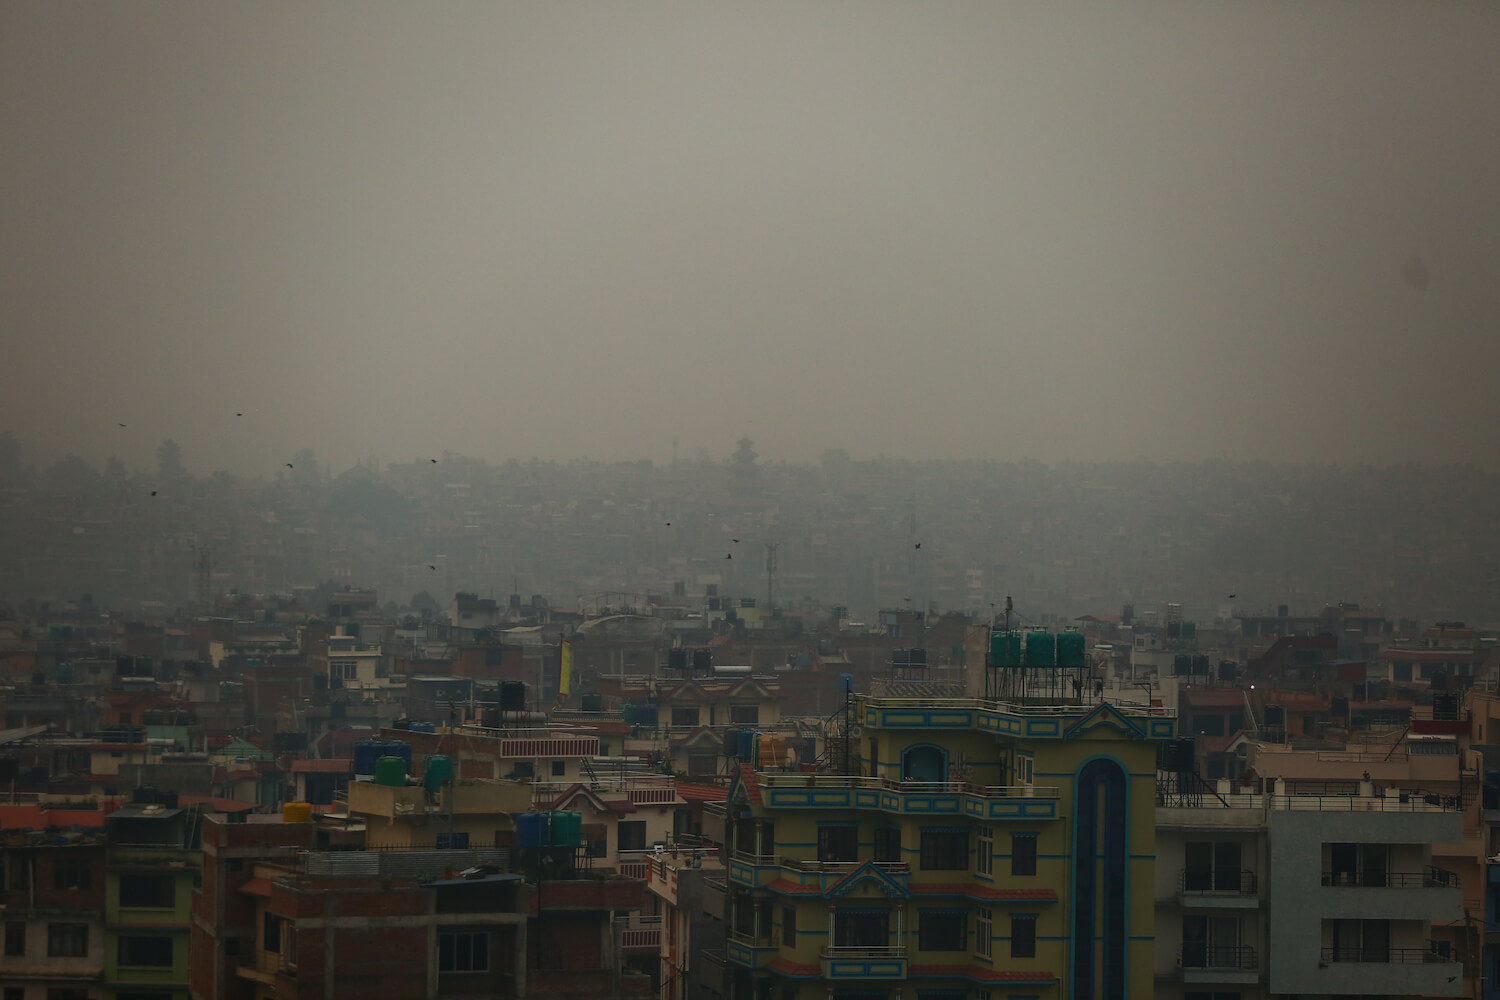 Central Nepal engulfed in smoke